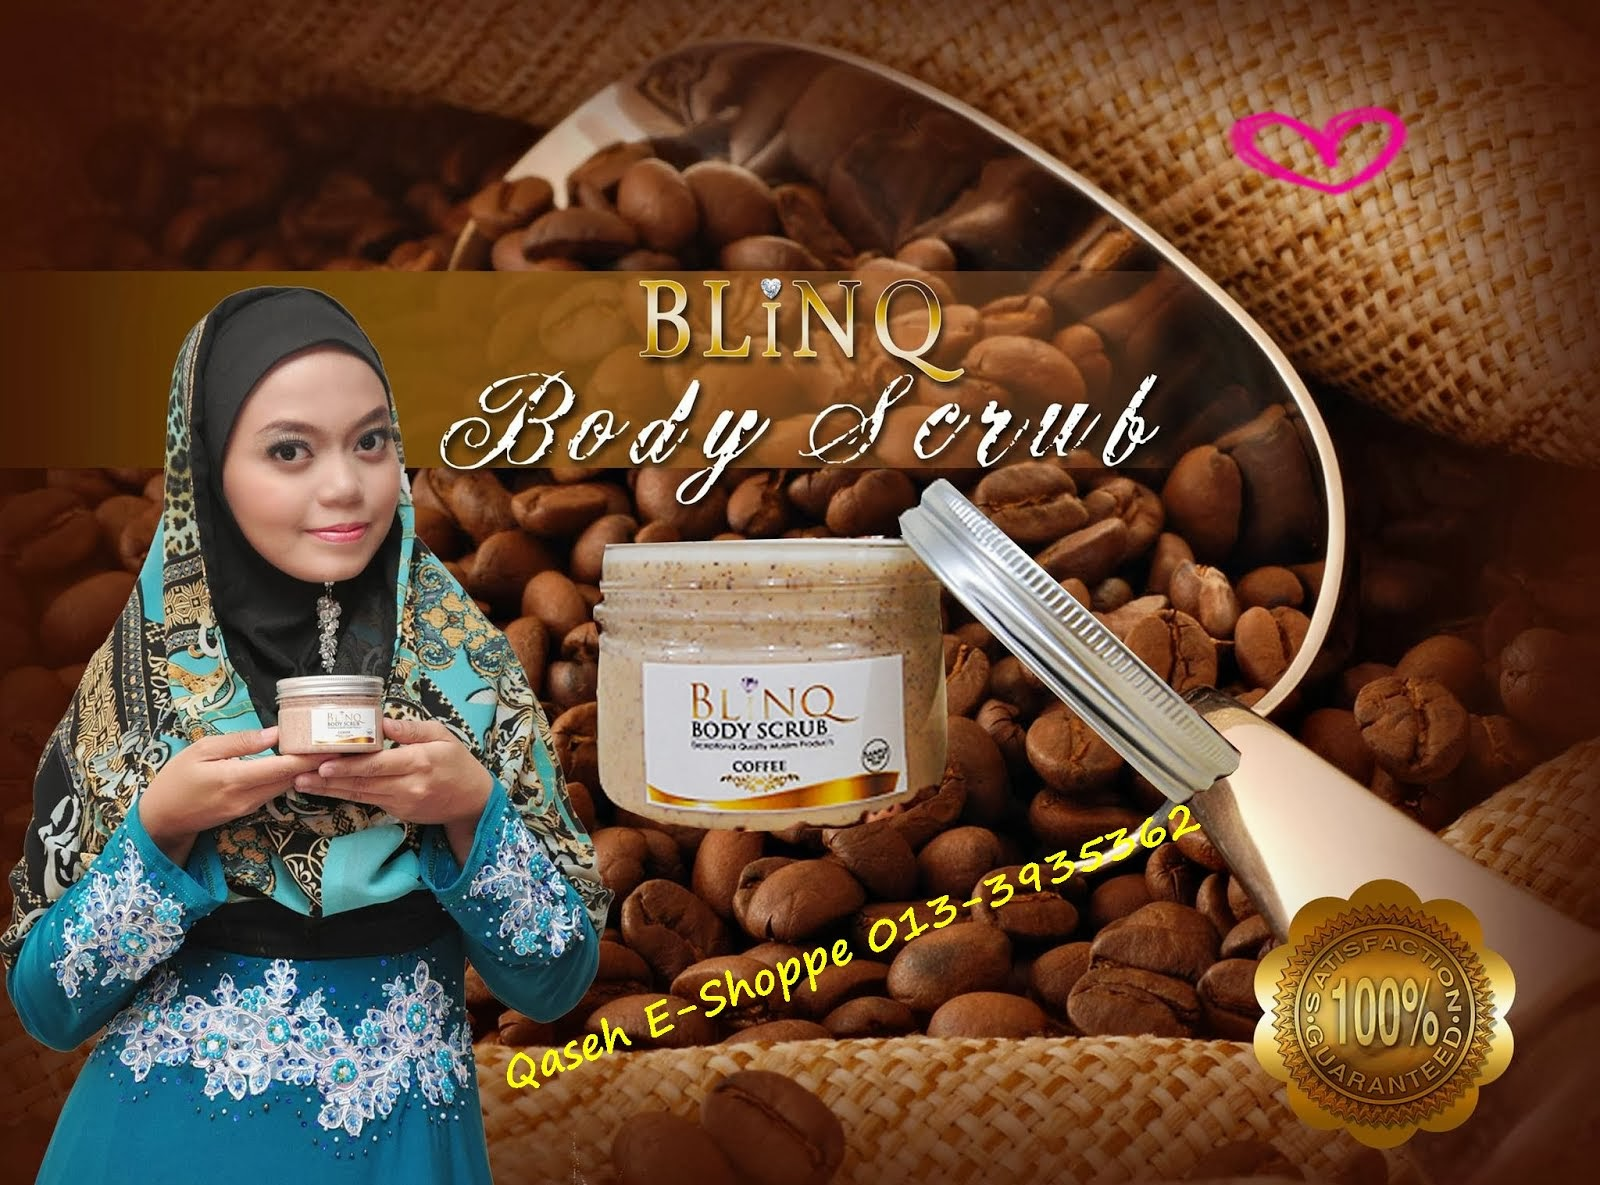 Blinq Beauty Drink